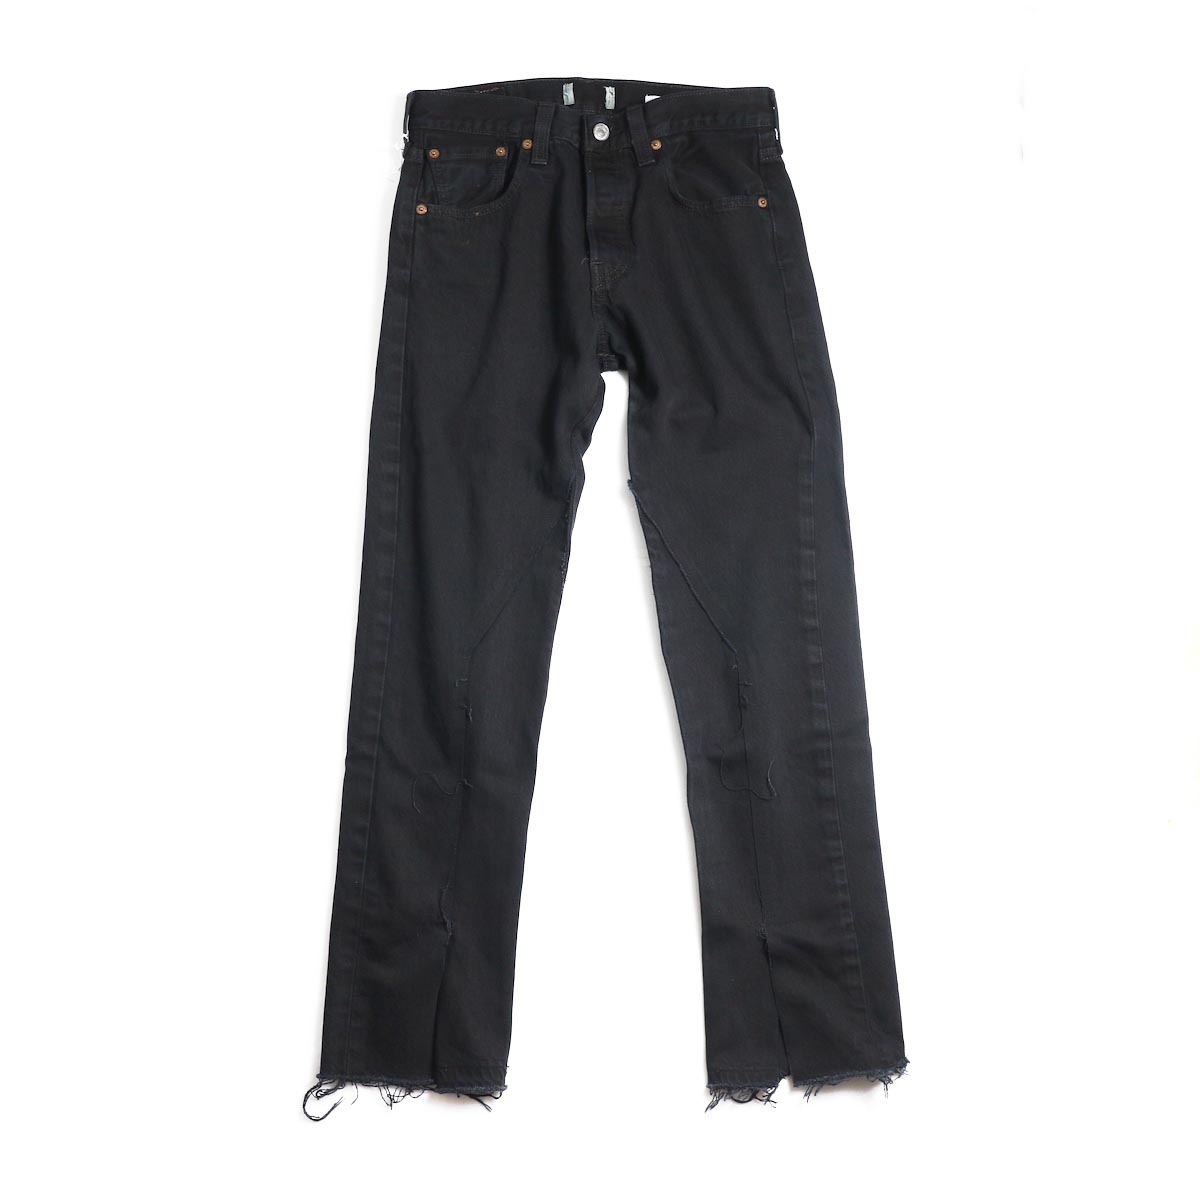 OLD PARK / Slit Jeans -Black Ssize(E)